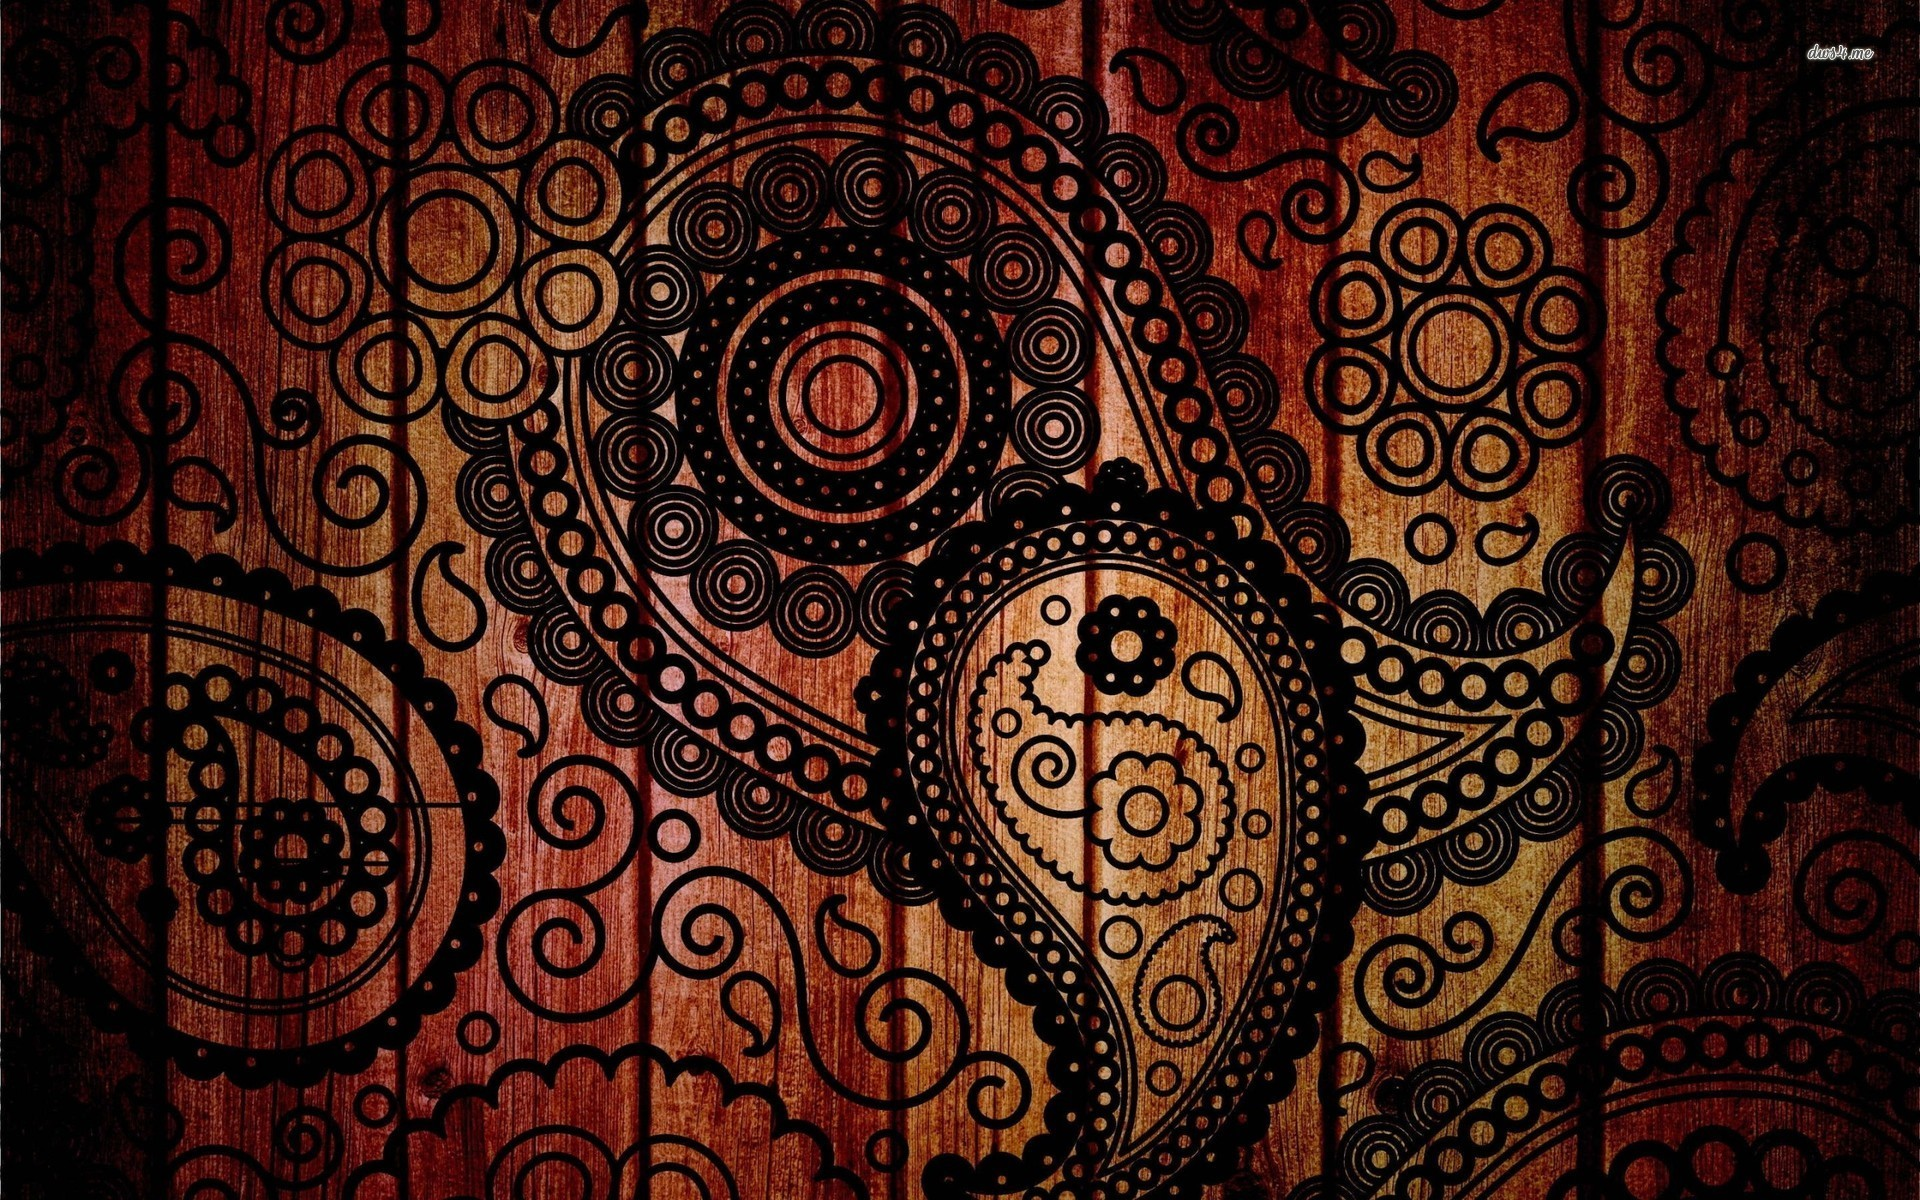 Indian Hd Backgrounds: Paisley Wallpaper ·① Download Free Stunning HD Wallpapers